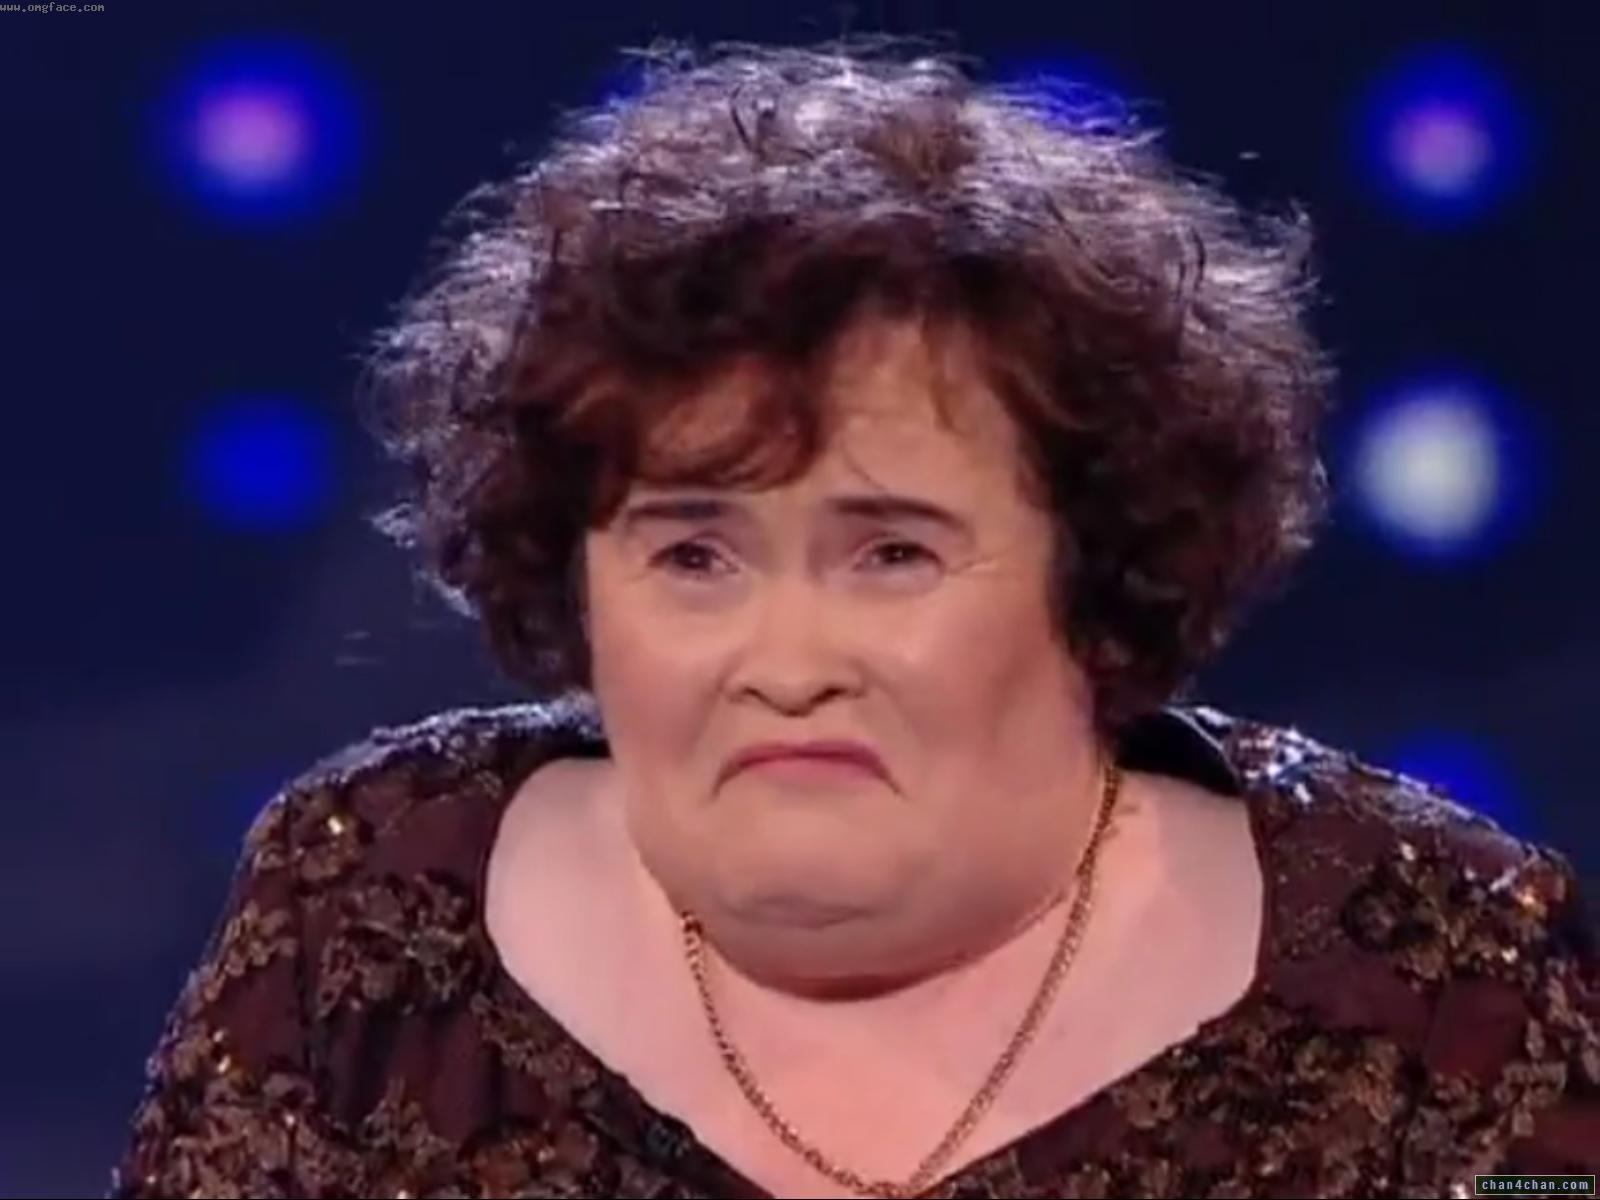 sad,Susan Boyle sad,Susan Boyle disappointed,Susan Boyle Depressed